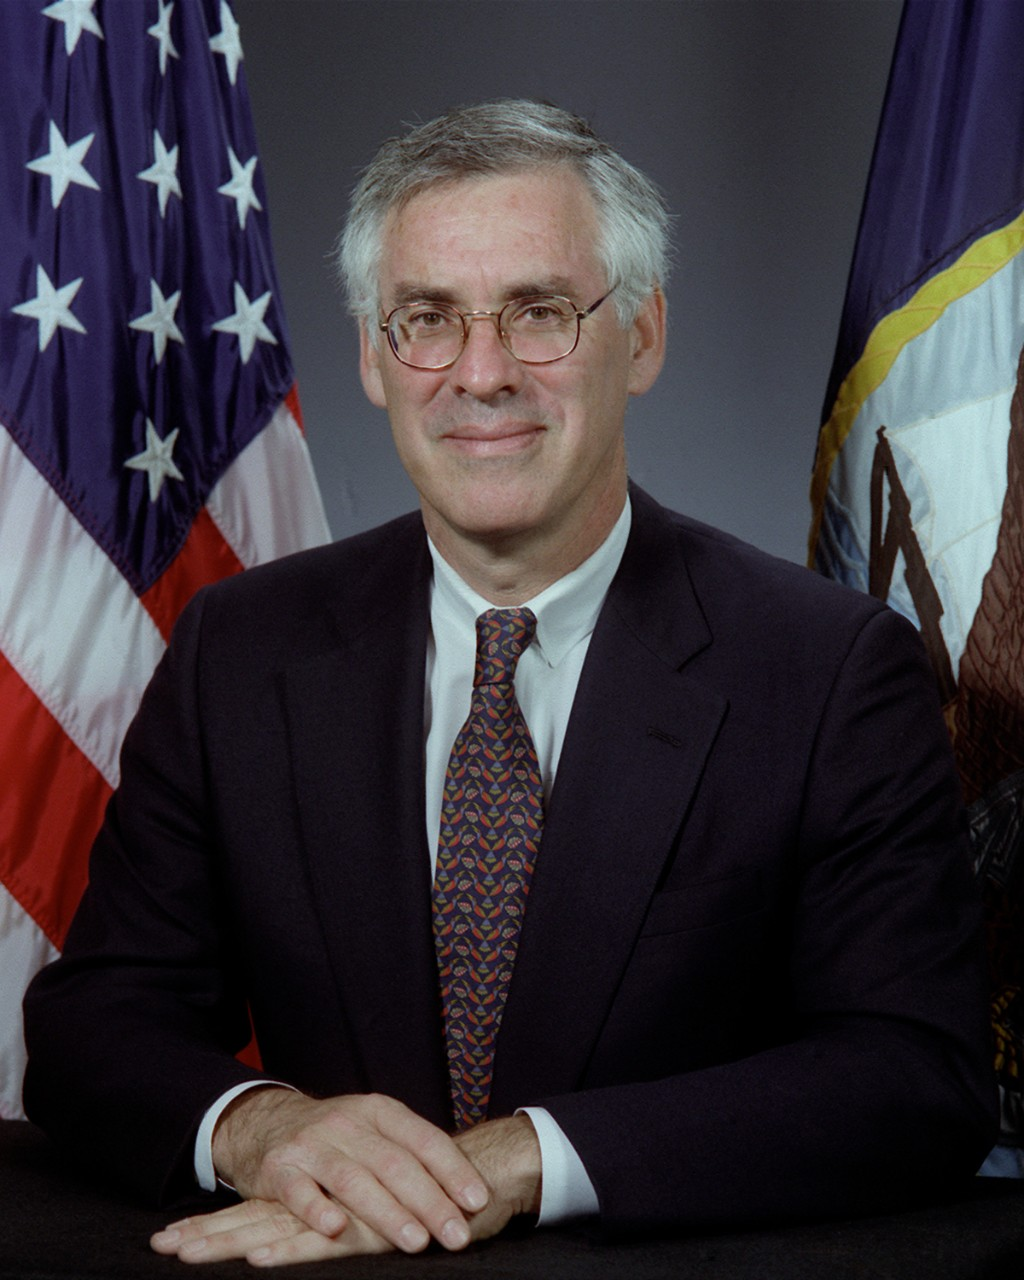 Secretary of the Navy Richard Jeffrey Danzig